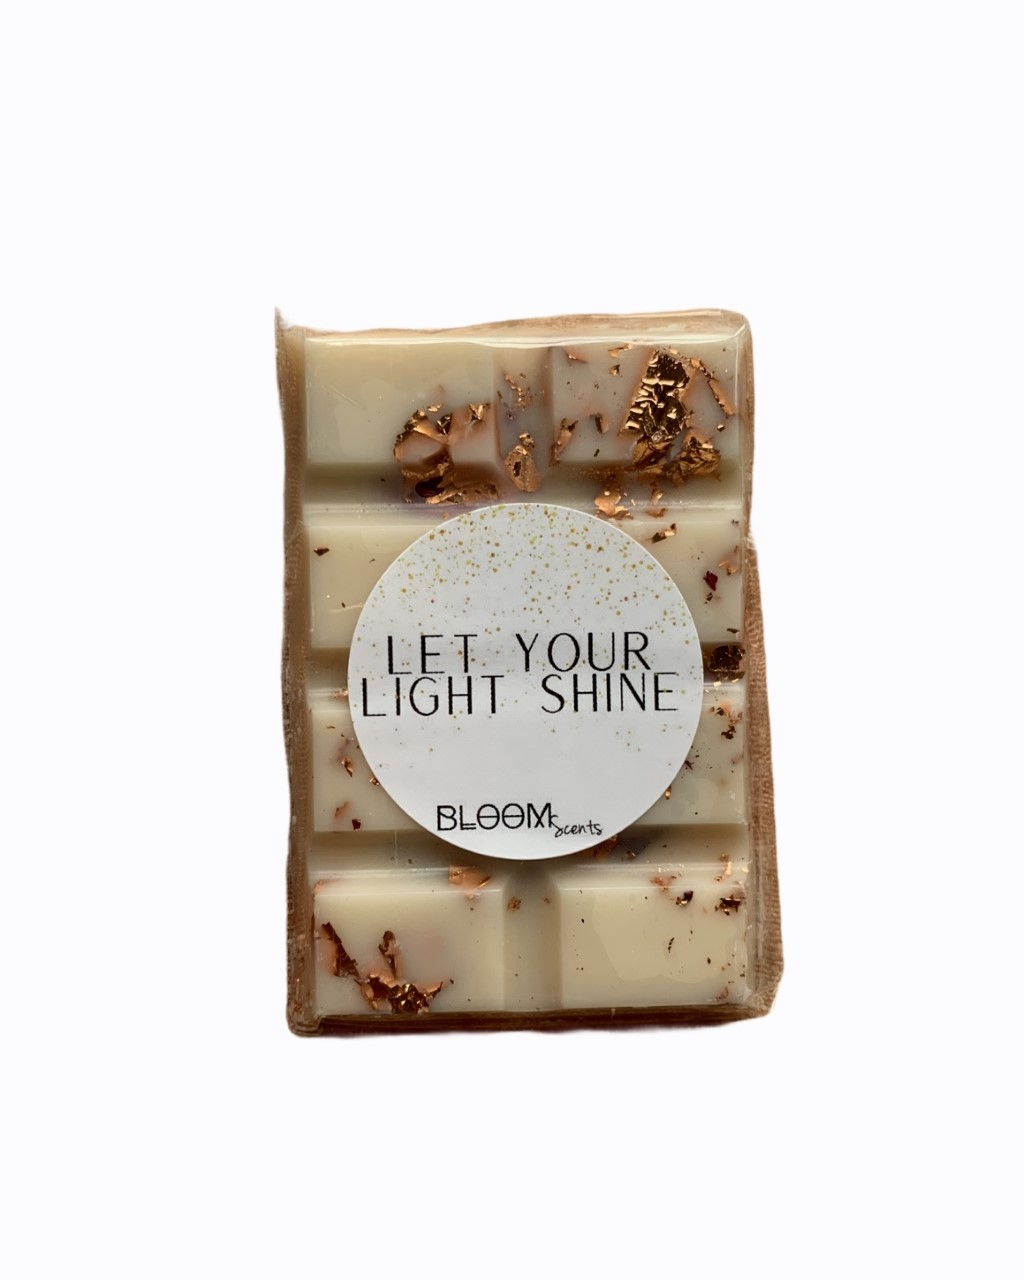 Essential oil wax bar